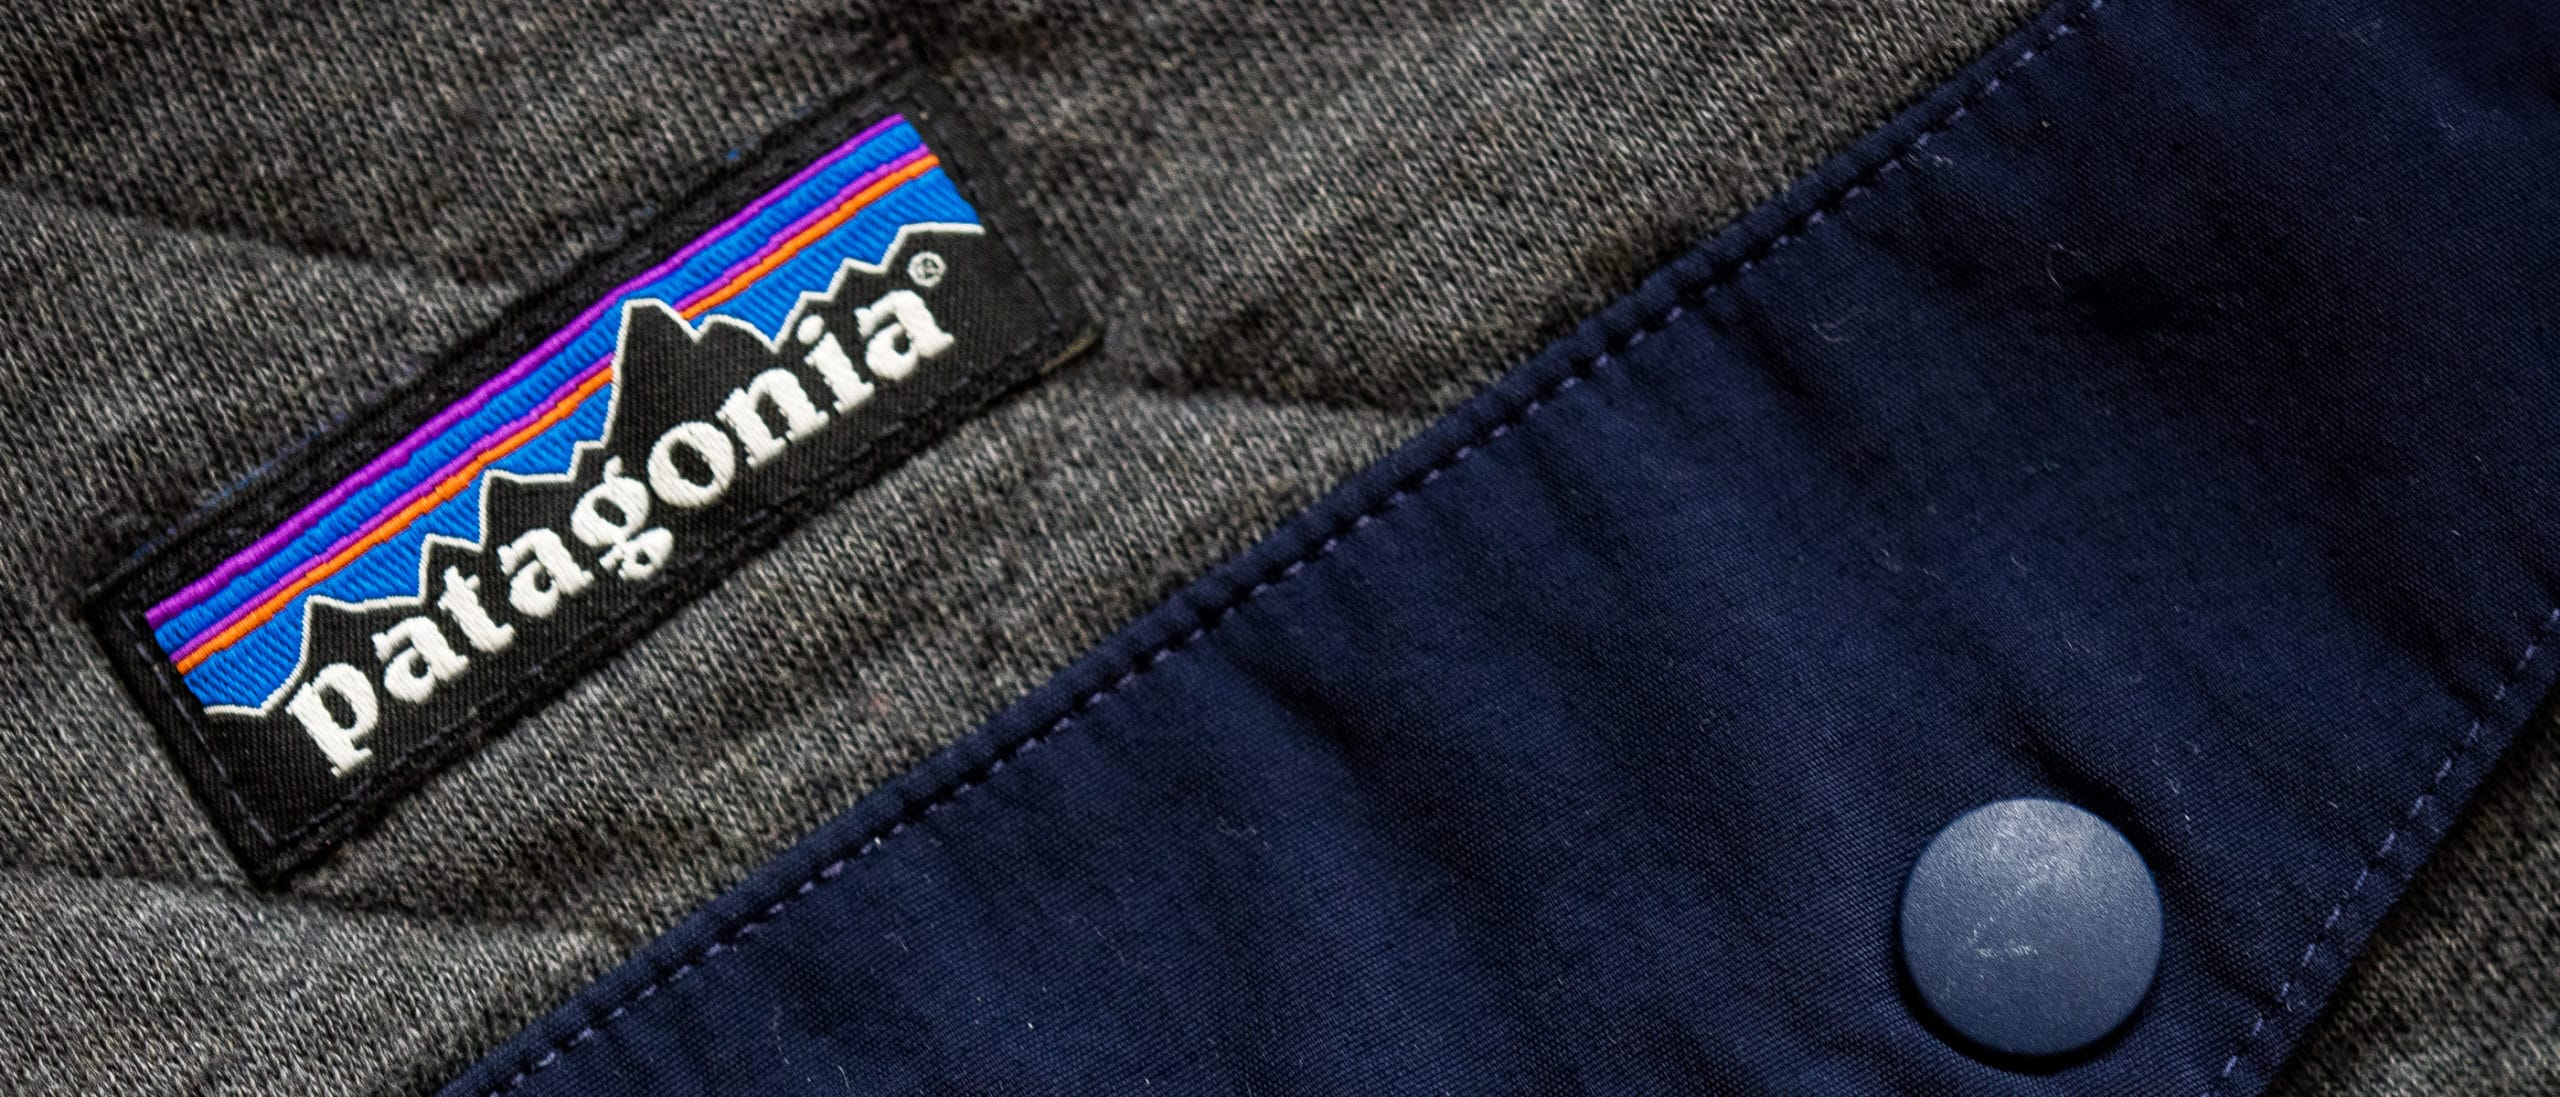 Patagonia logo on gray quilted jacket